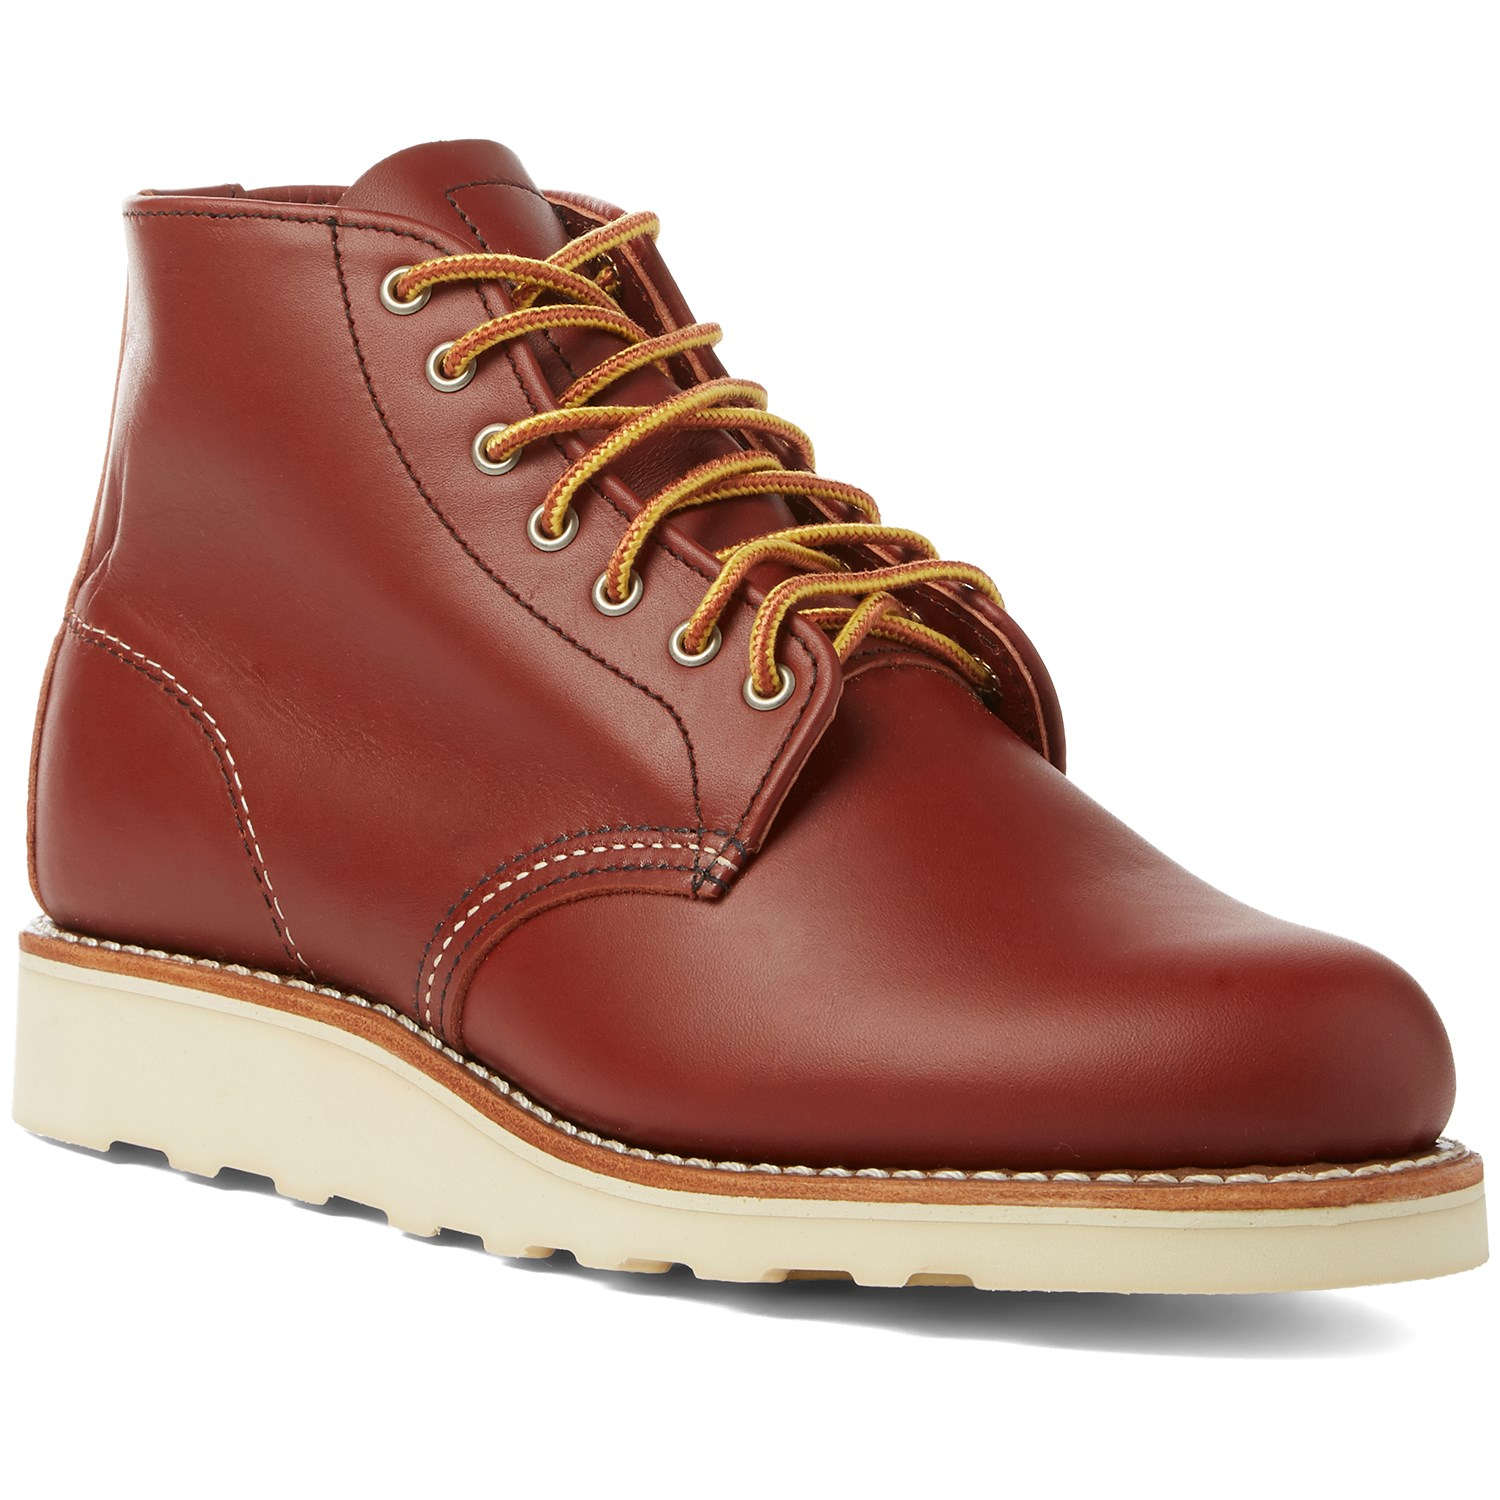 Boots for women in premium quality |